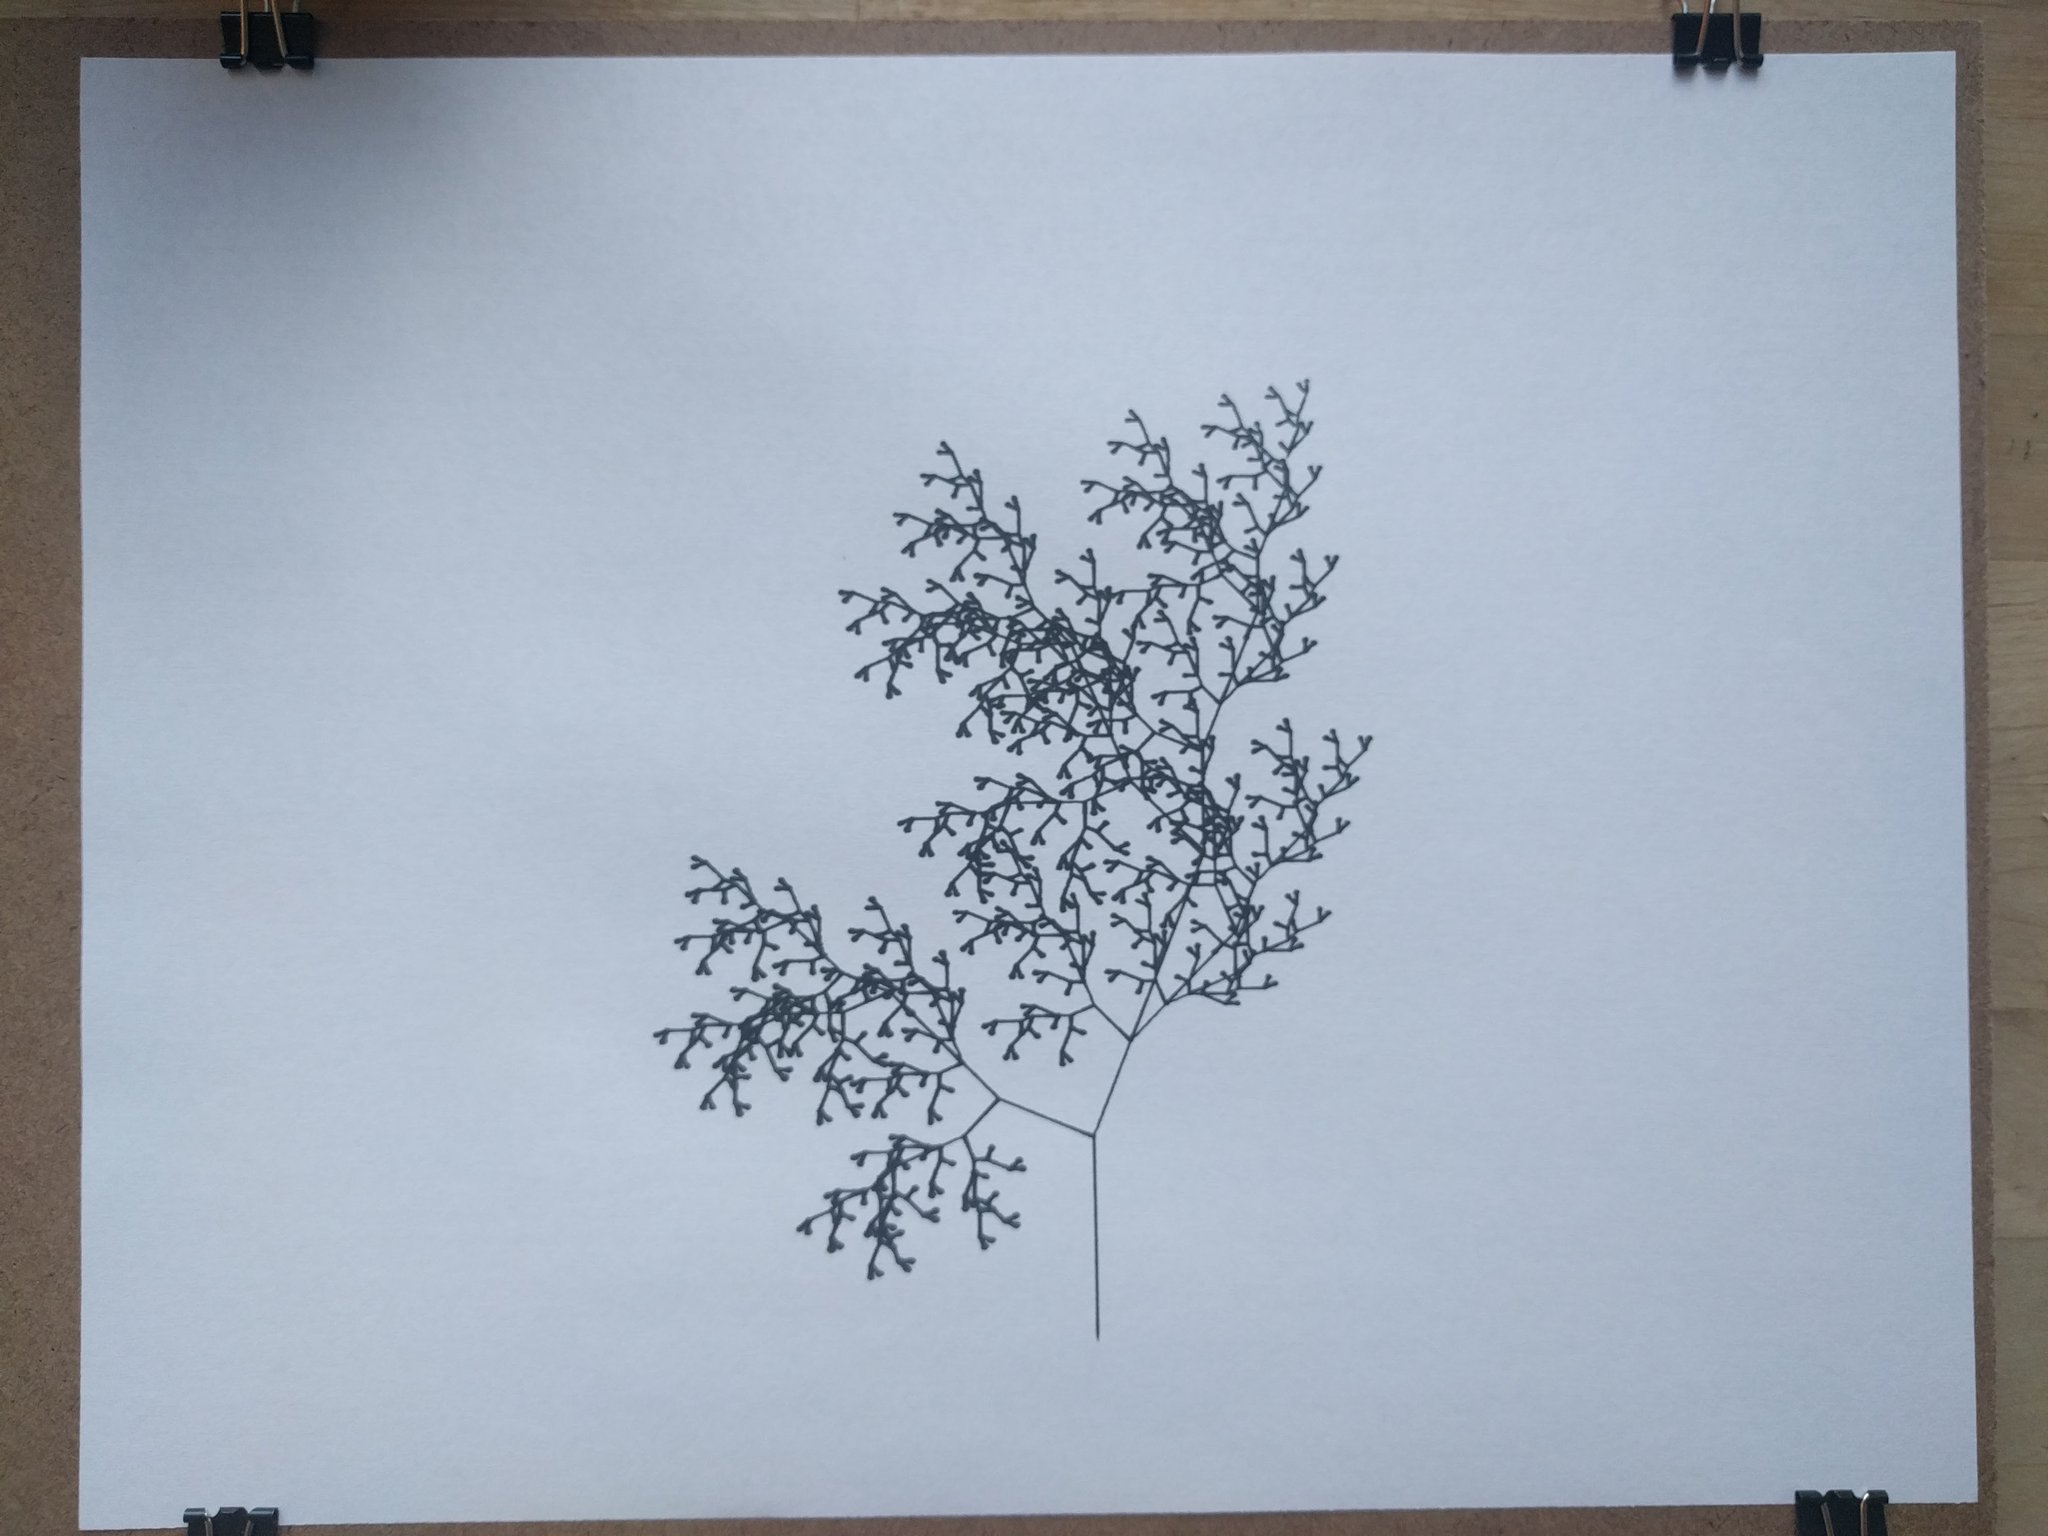 Fractal tree drawn by AxiDraw